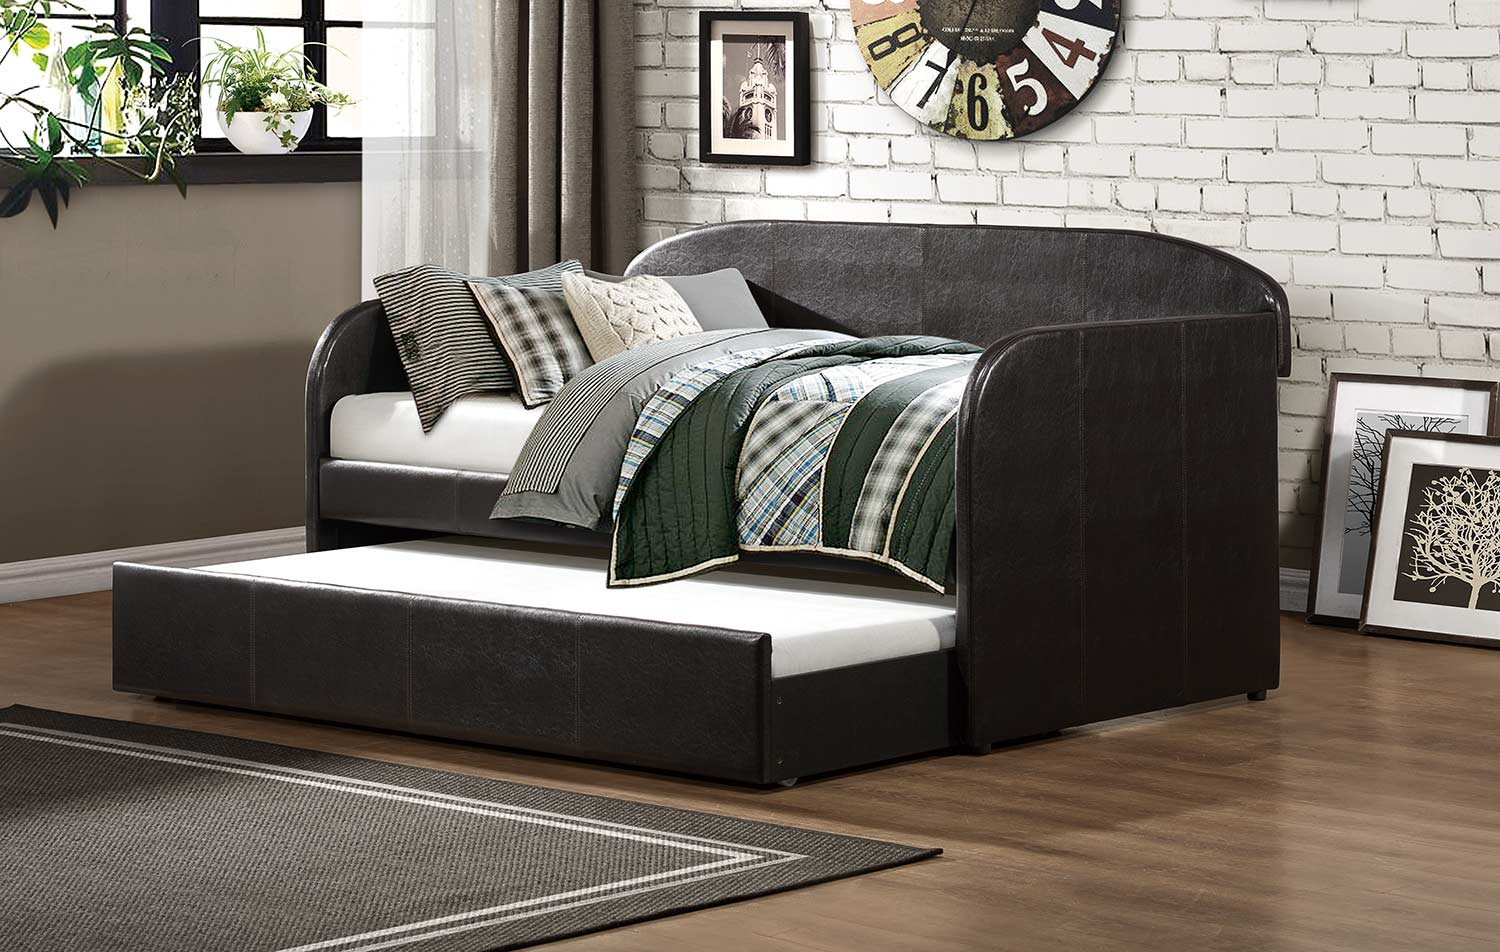 Homelegance Roland Daybed with Trundle - Dark Brown Bi-Cast Vinyl